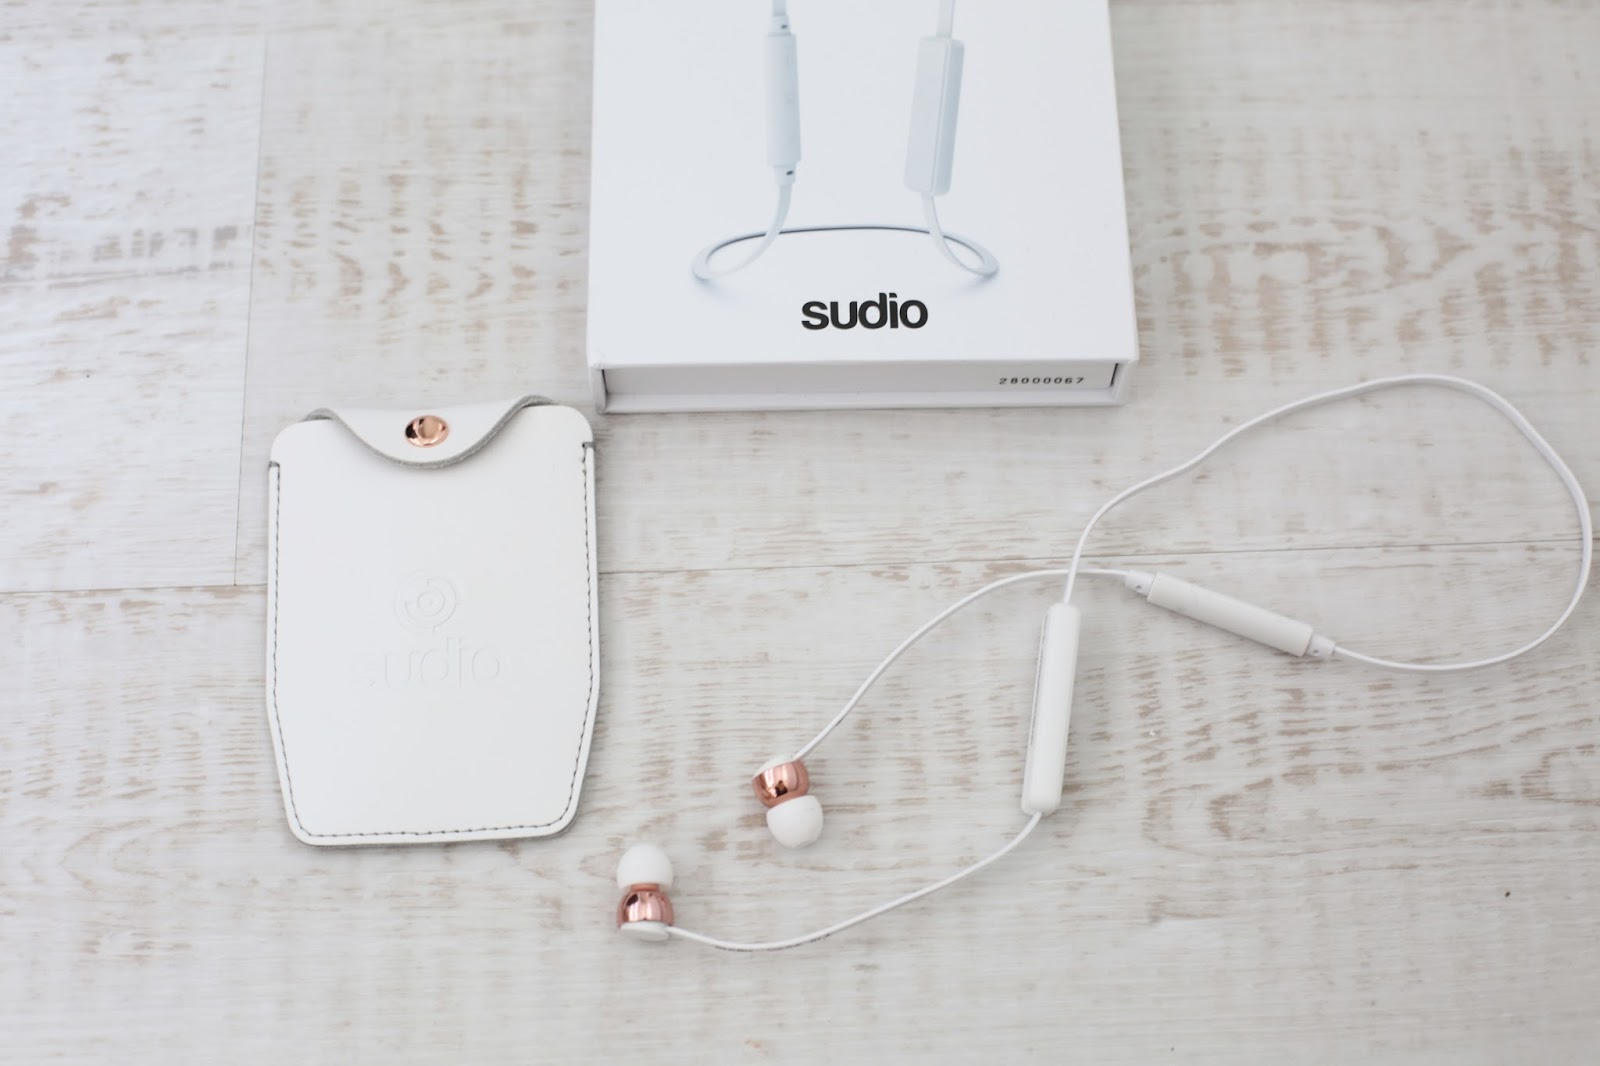 sudio headphones